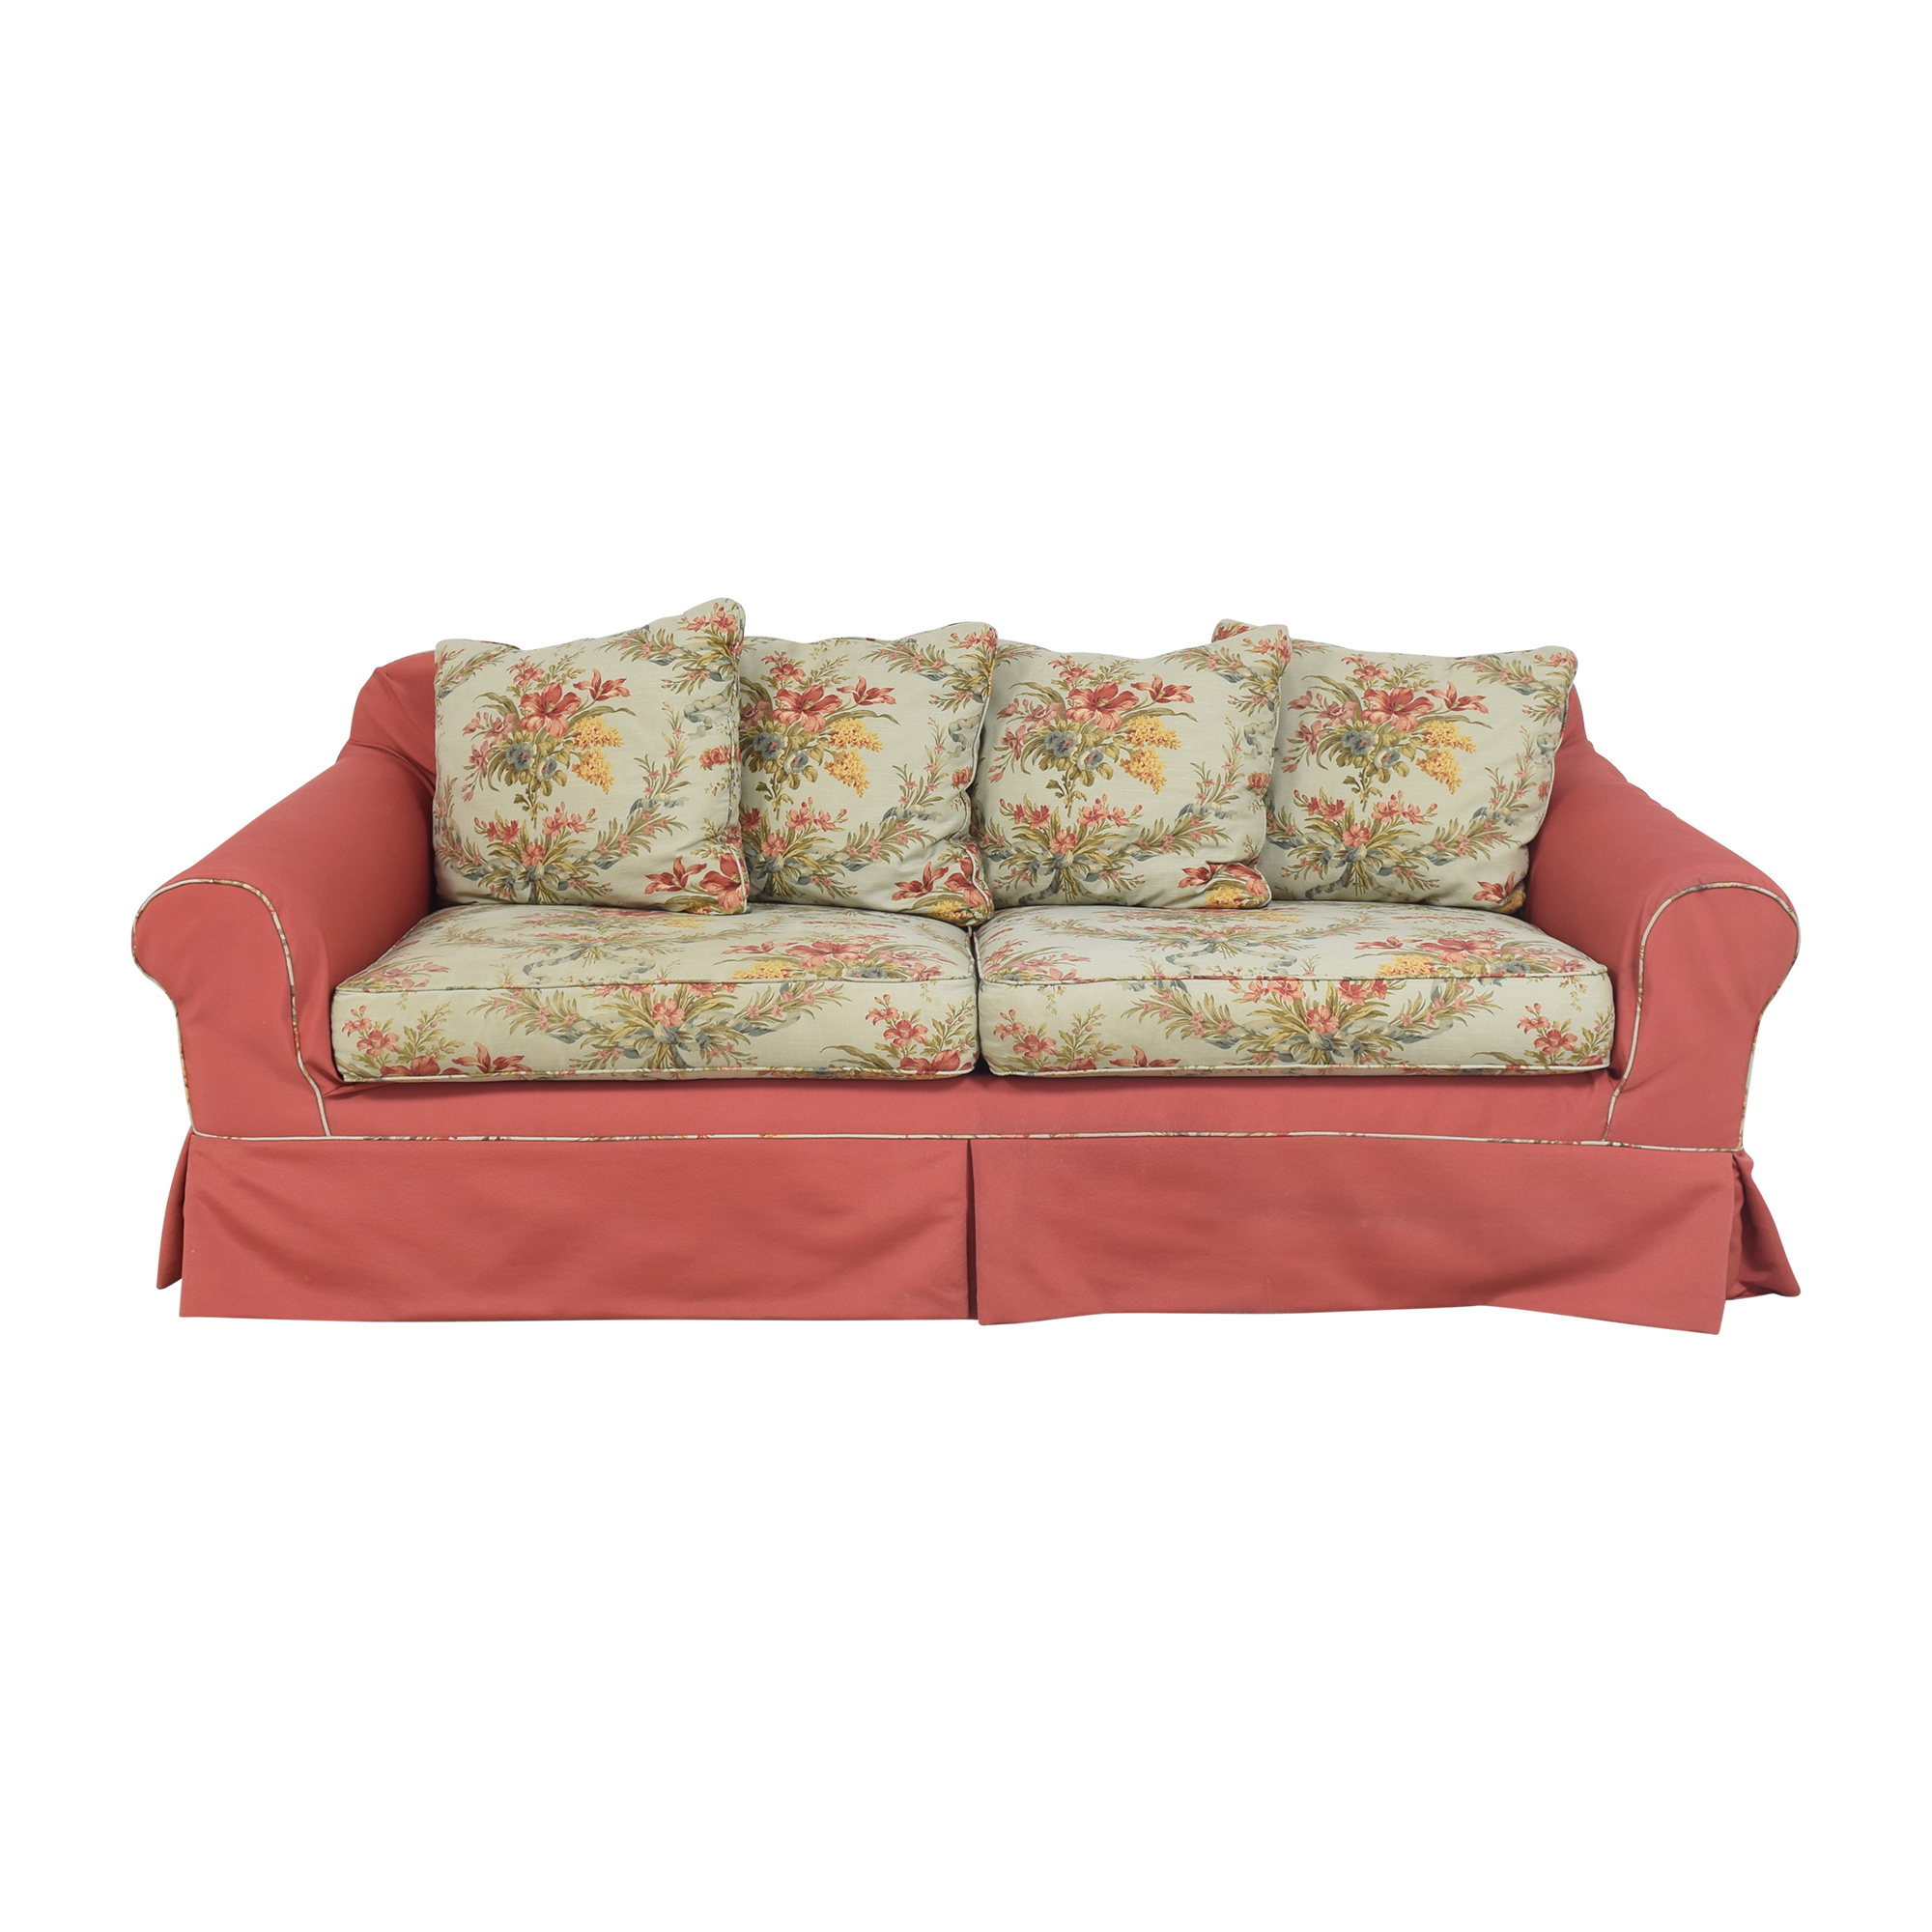 shop Ethan Allen Ethan Allen Slipcovered Sofa online